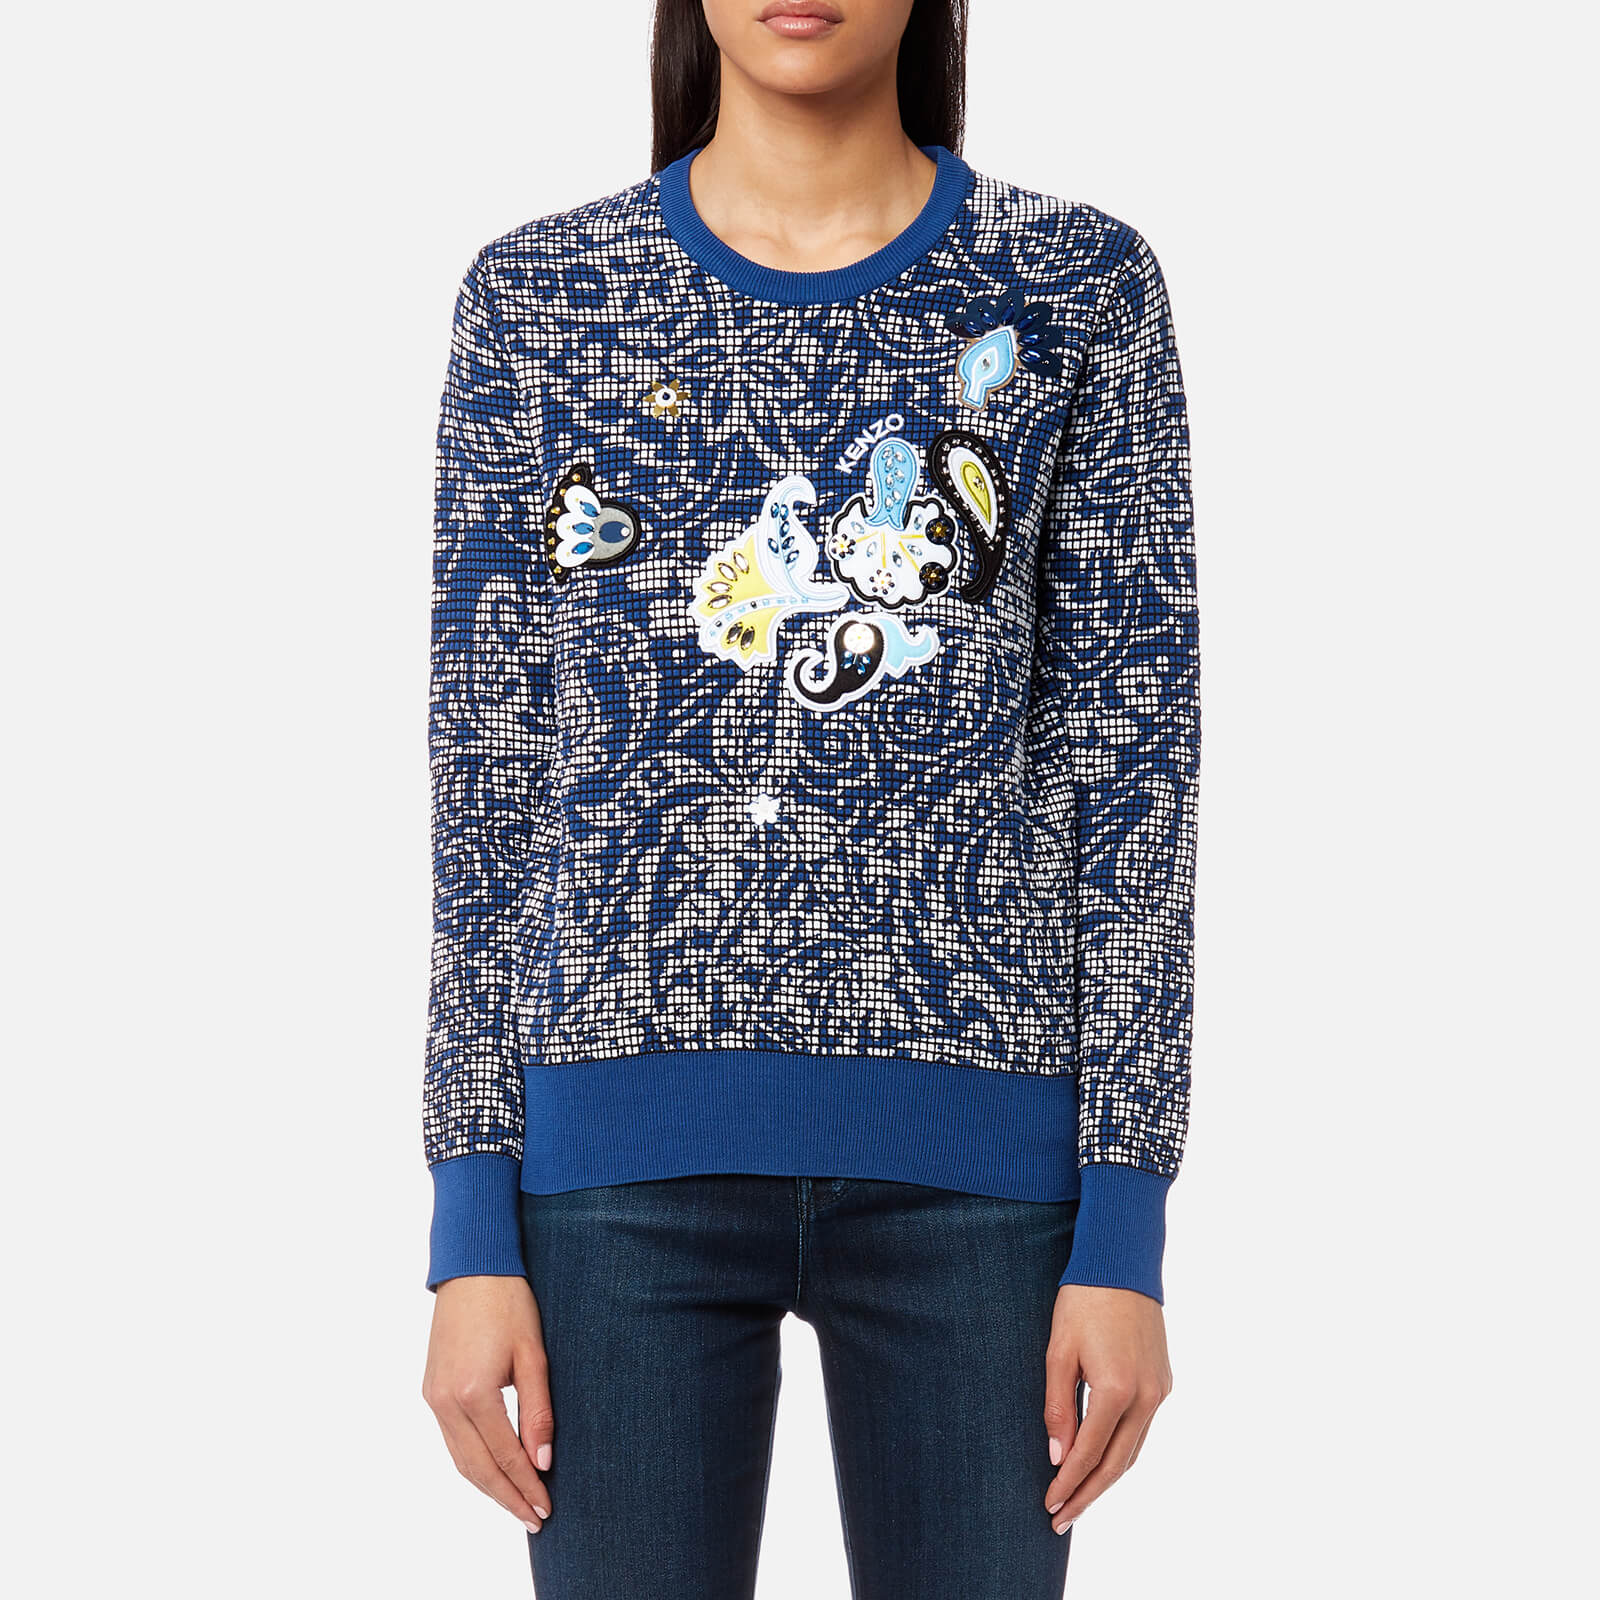 c72651129 KENZO Women's Embroidered Paisley Jumper - French Blue - Free UK Delivery  over £50